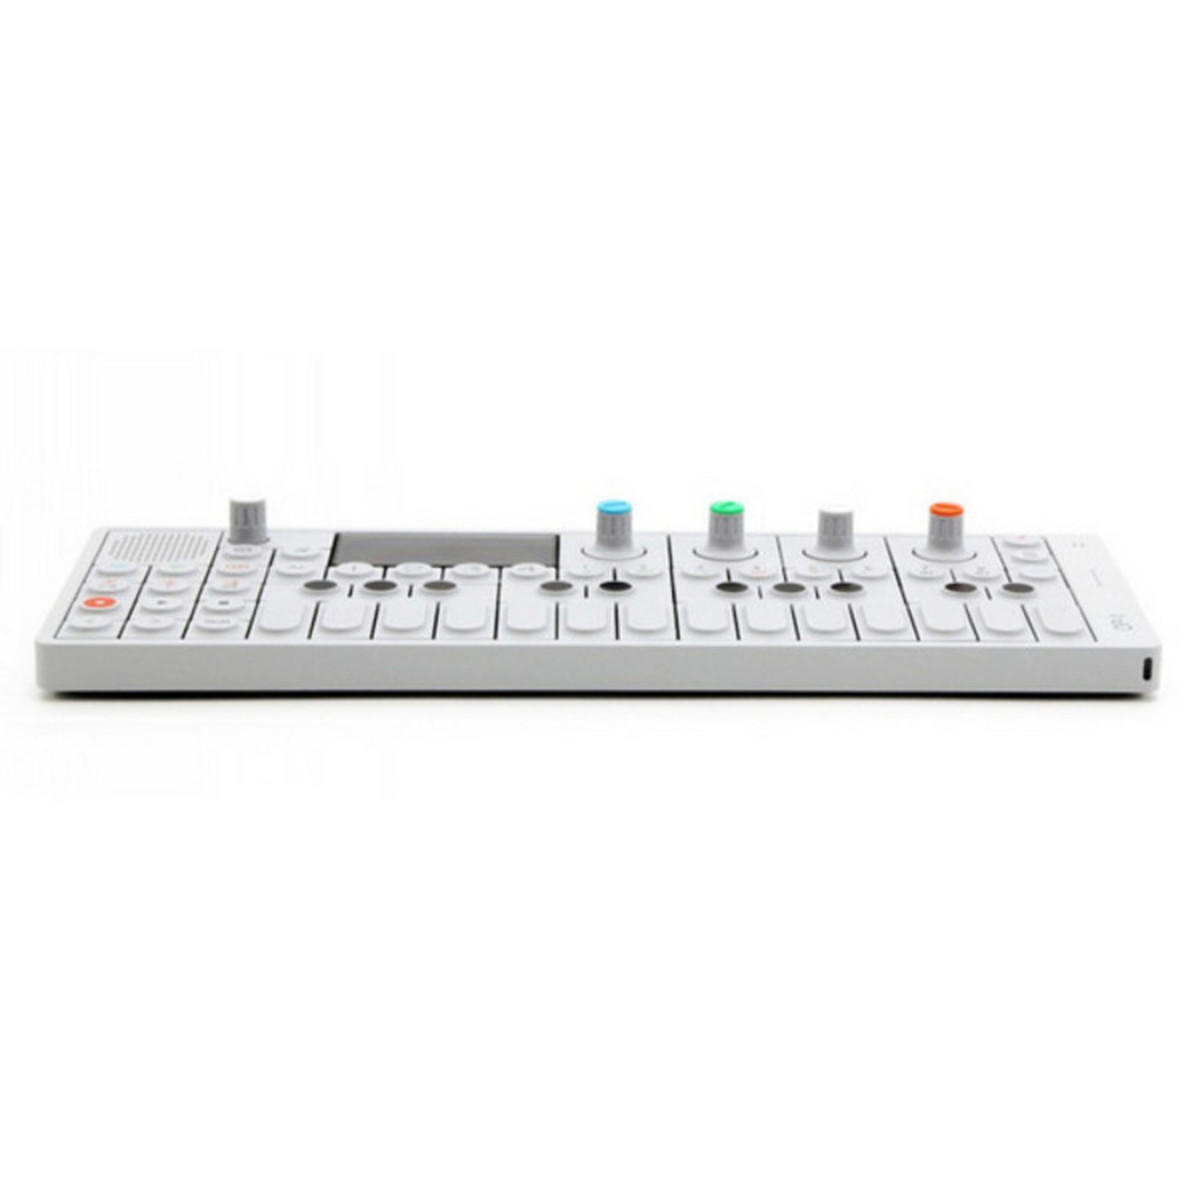 Teenage Engineering Op 1 And Accessory Kit Bundle Nearly